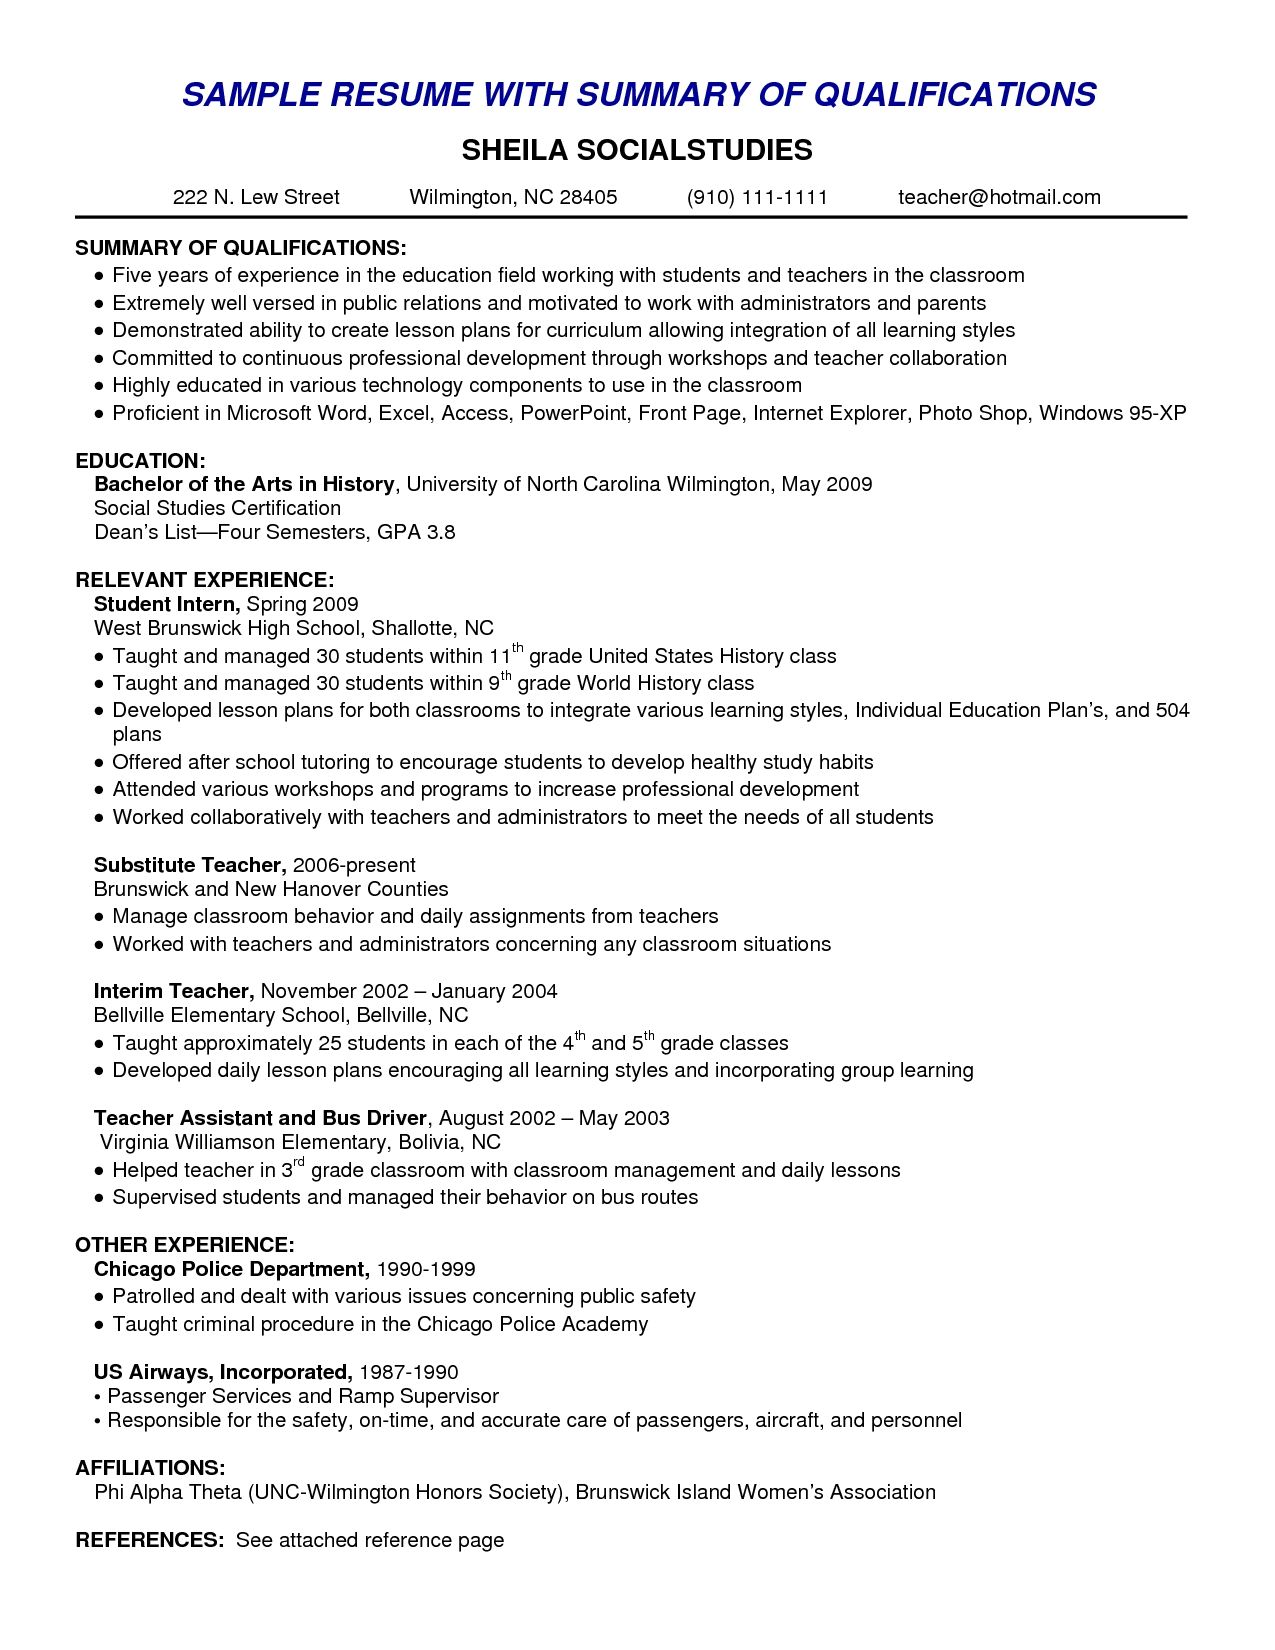 Examples Of A Resume Resume Skills Summary Examples Example Of Skills Summary For